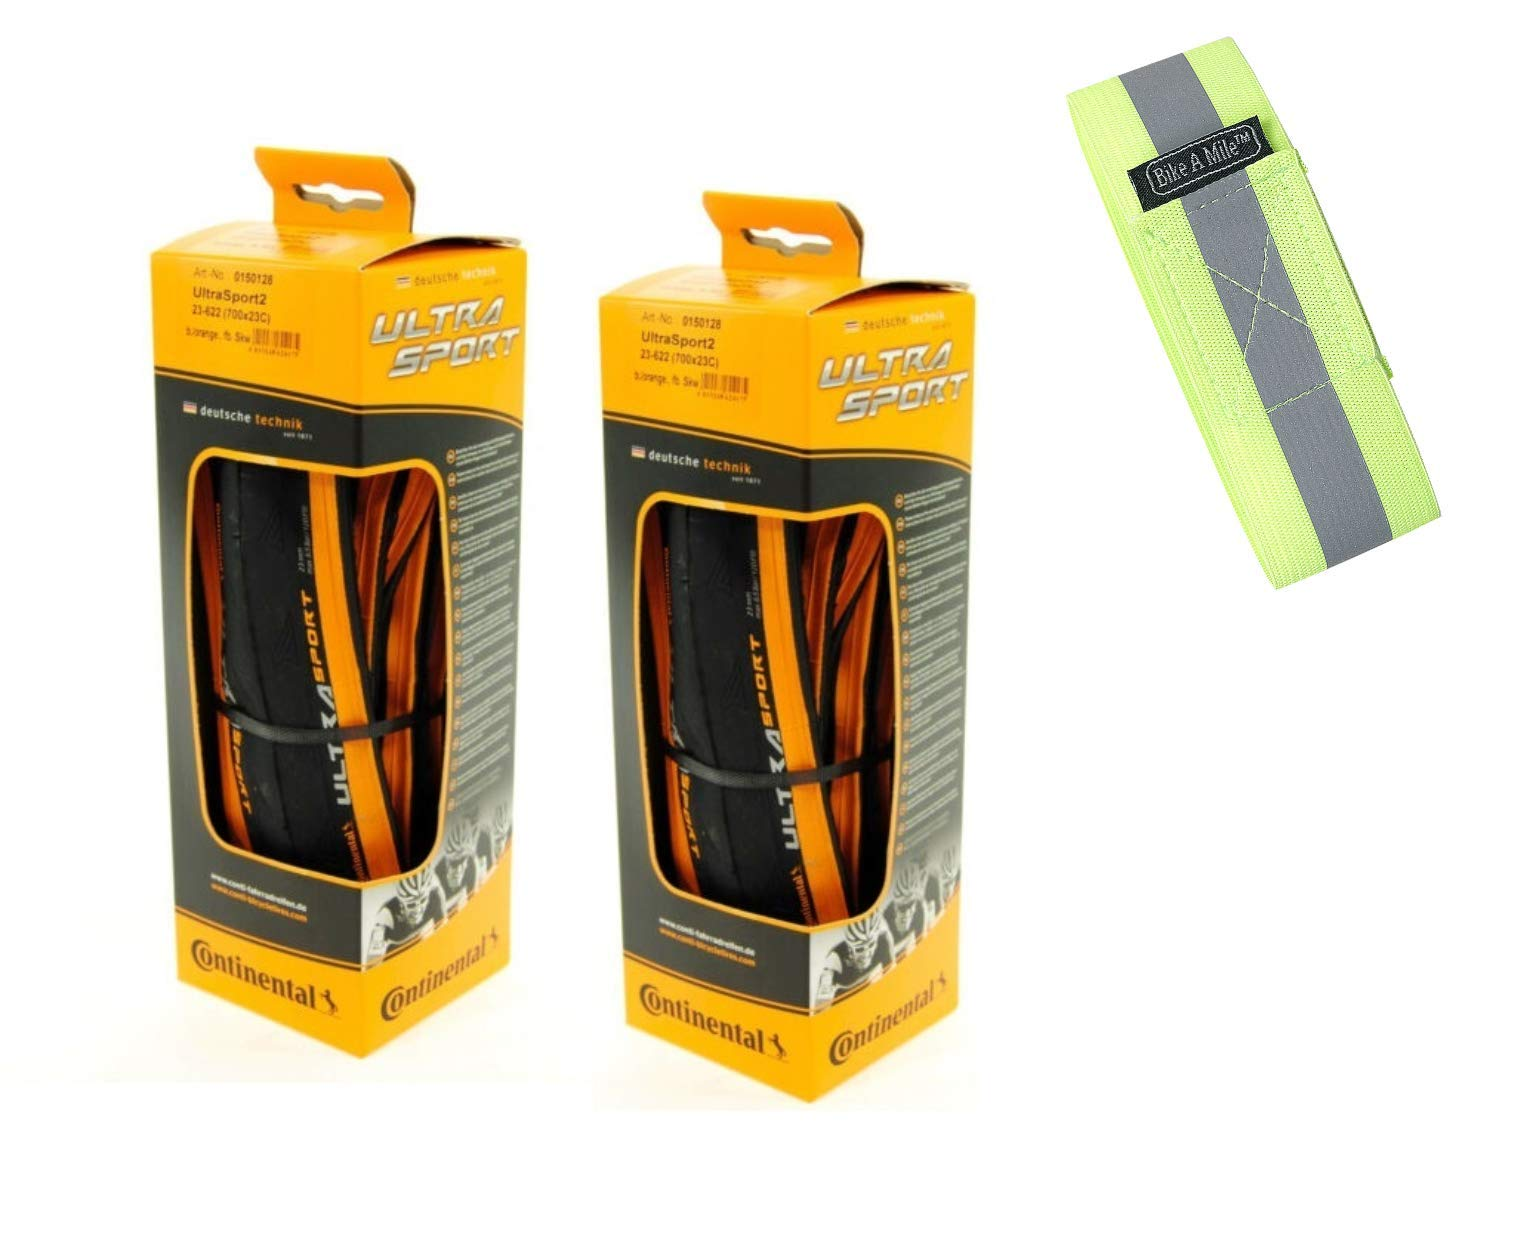 Bike A Mile Continental Ultra Sport II Road Bike Tires Folding Bike Tire Set of Bicycle Tires - with Reflective Armband (2 Orange Tires + Reflector, 700 x 25mm) by Bike A Mile